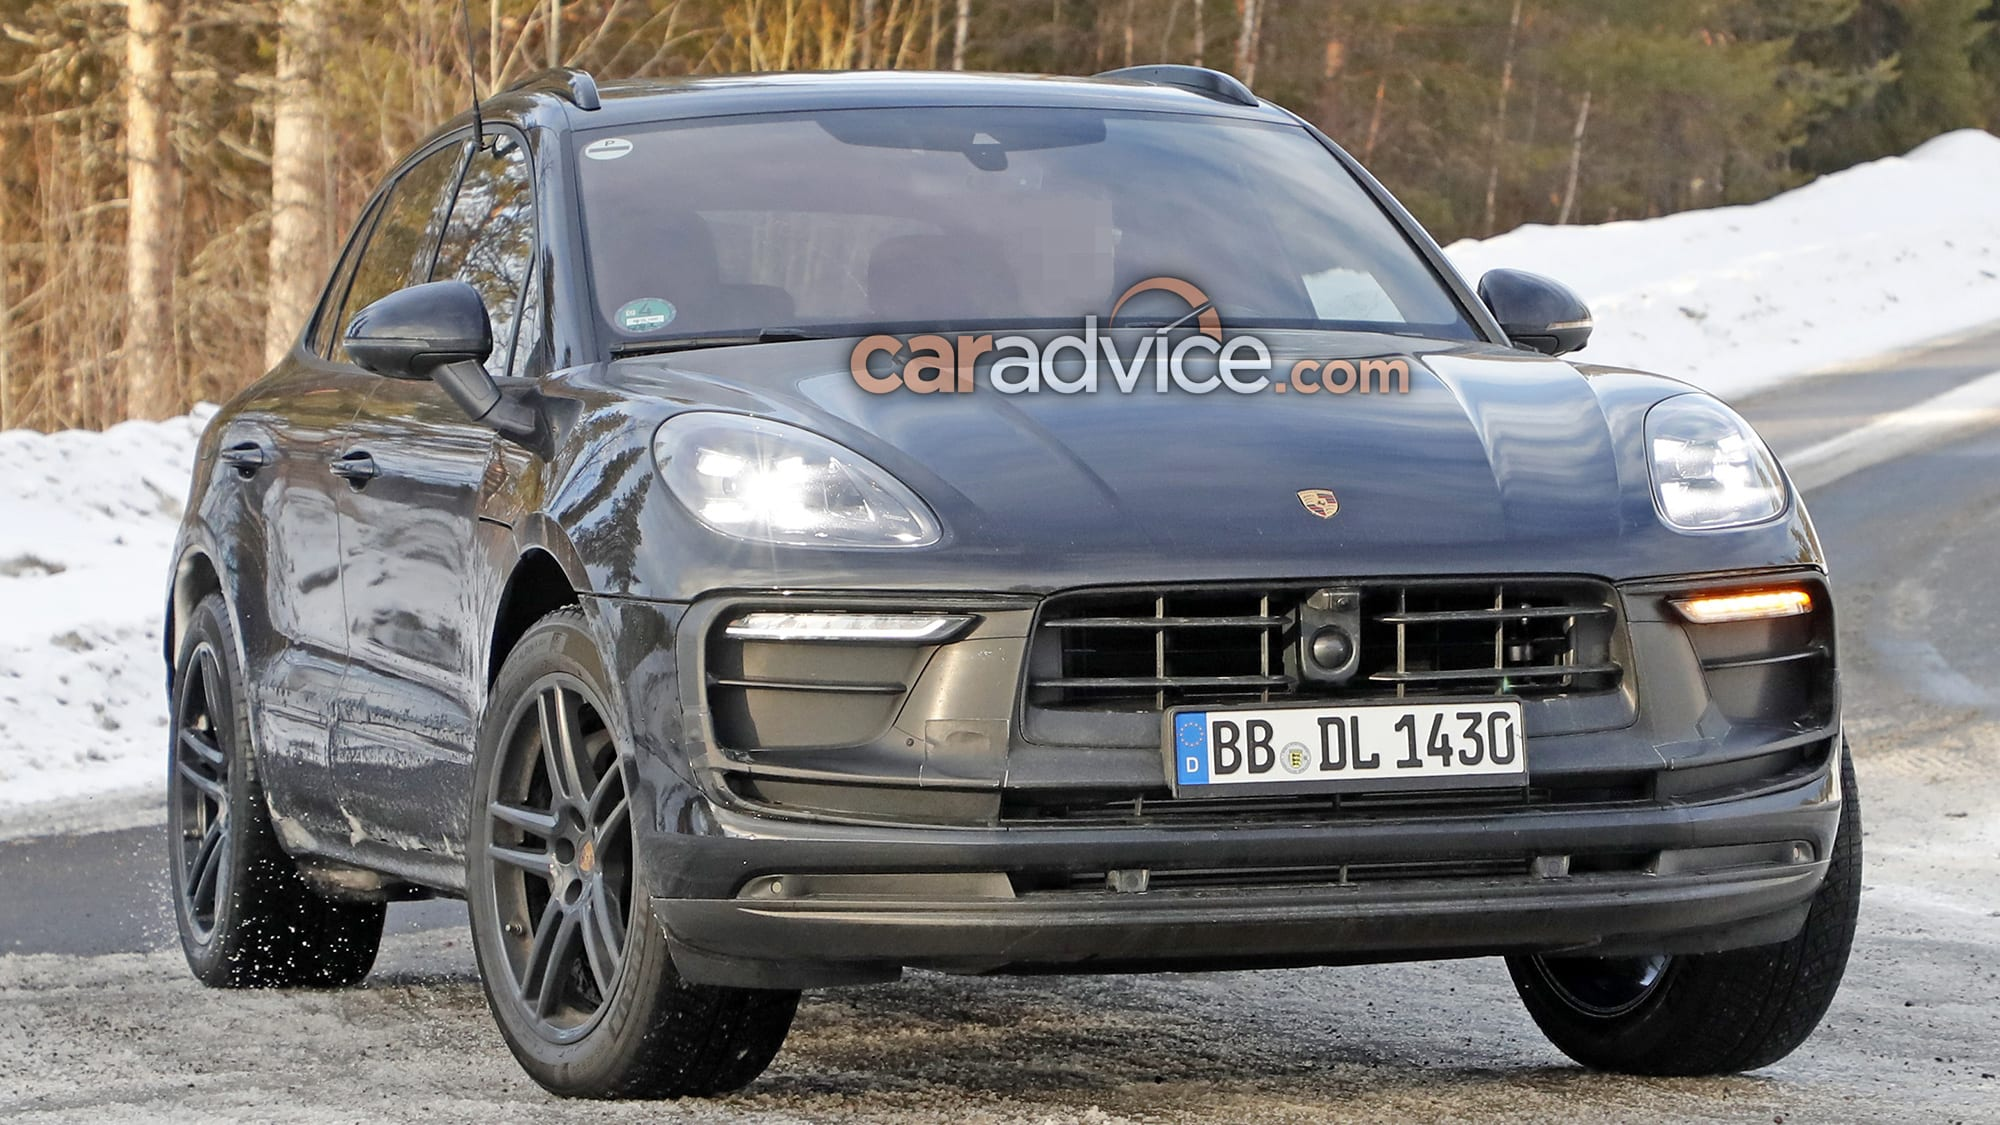 Spied Is The 2021 Porsche Macan Hiding Under This One Caradvice